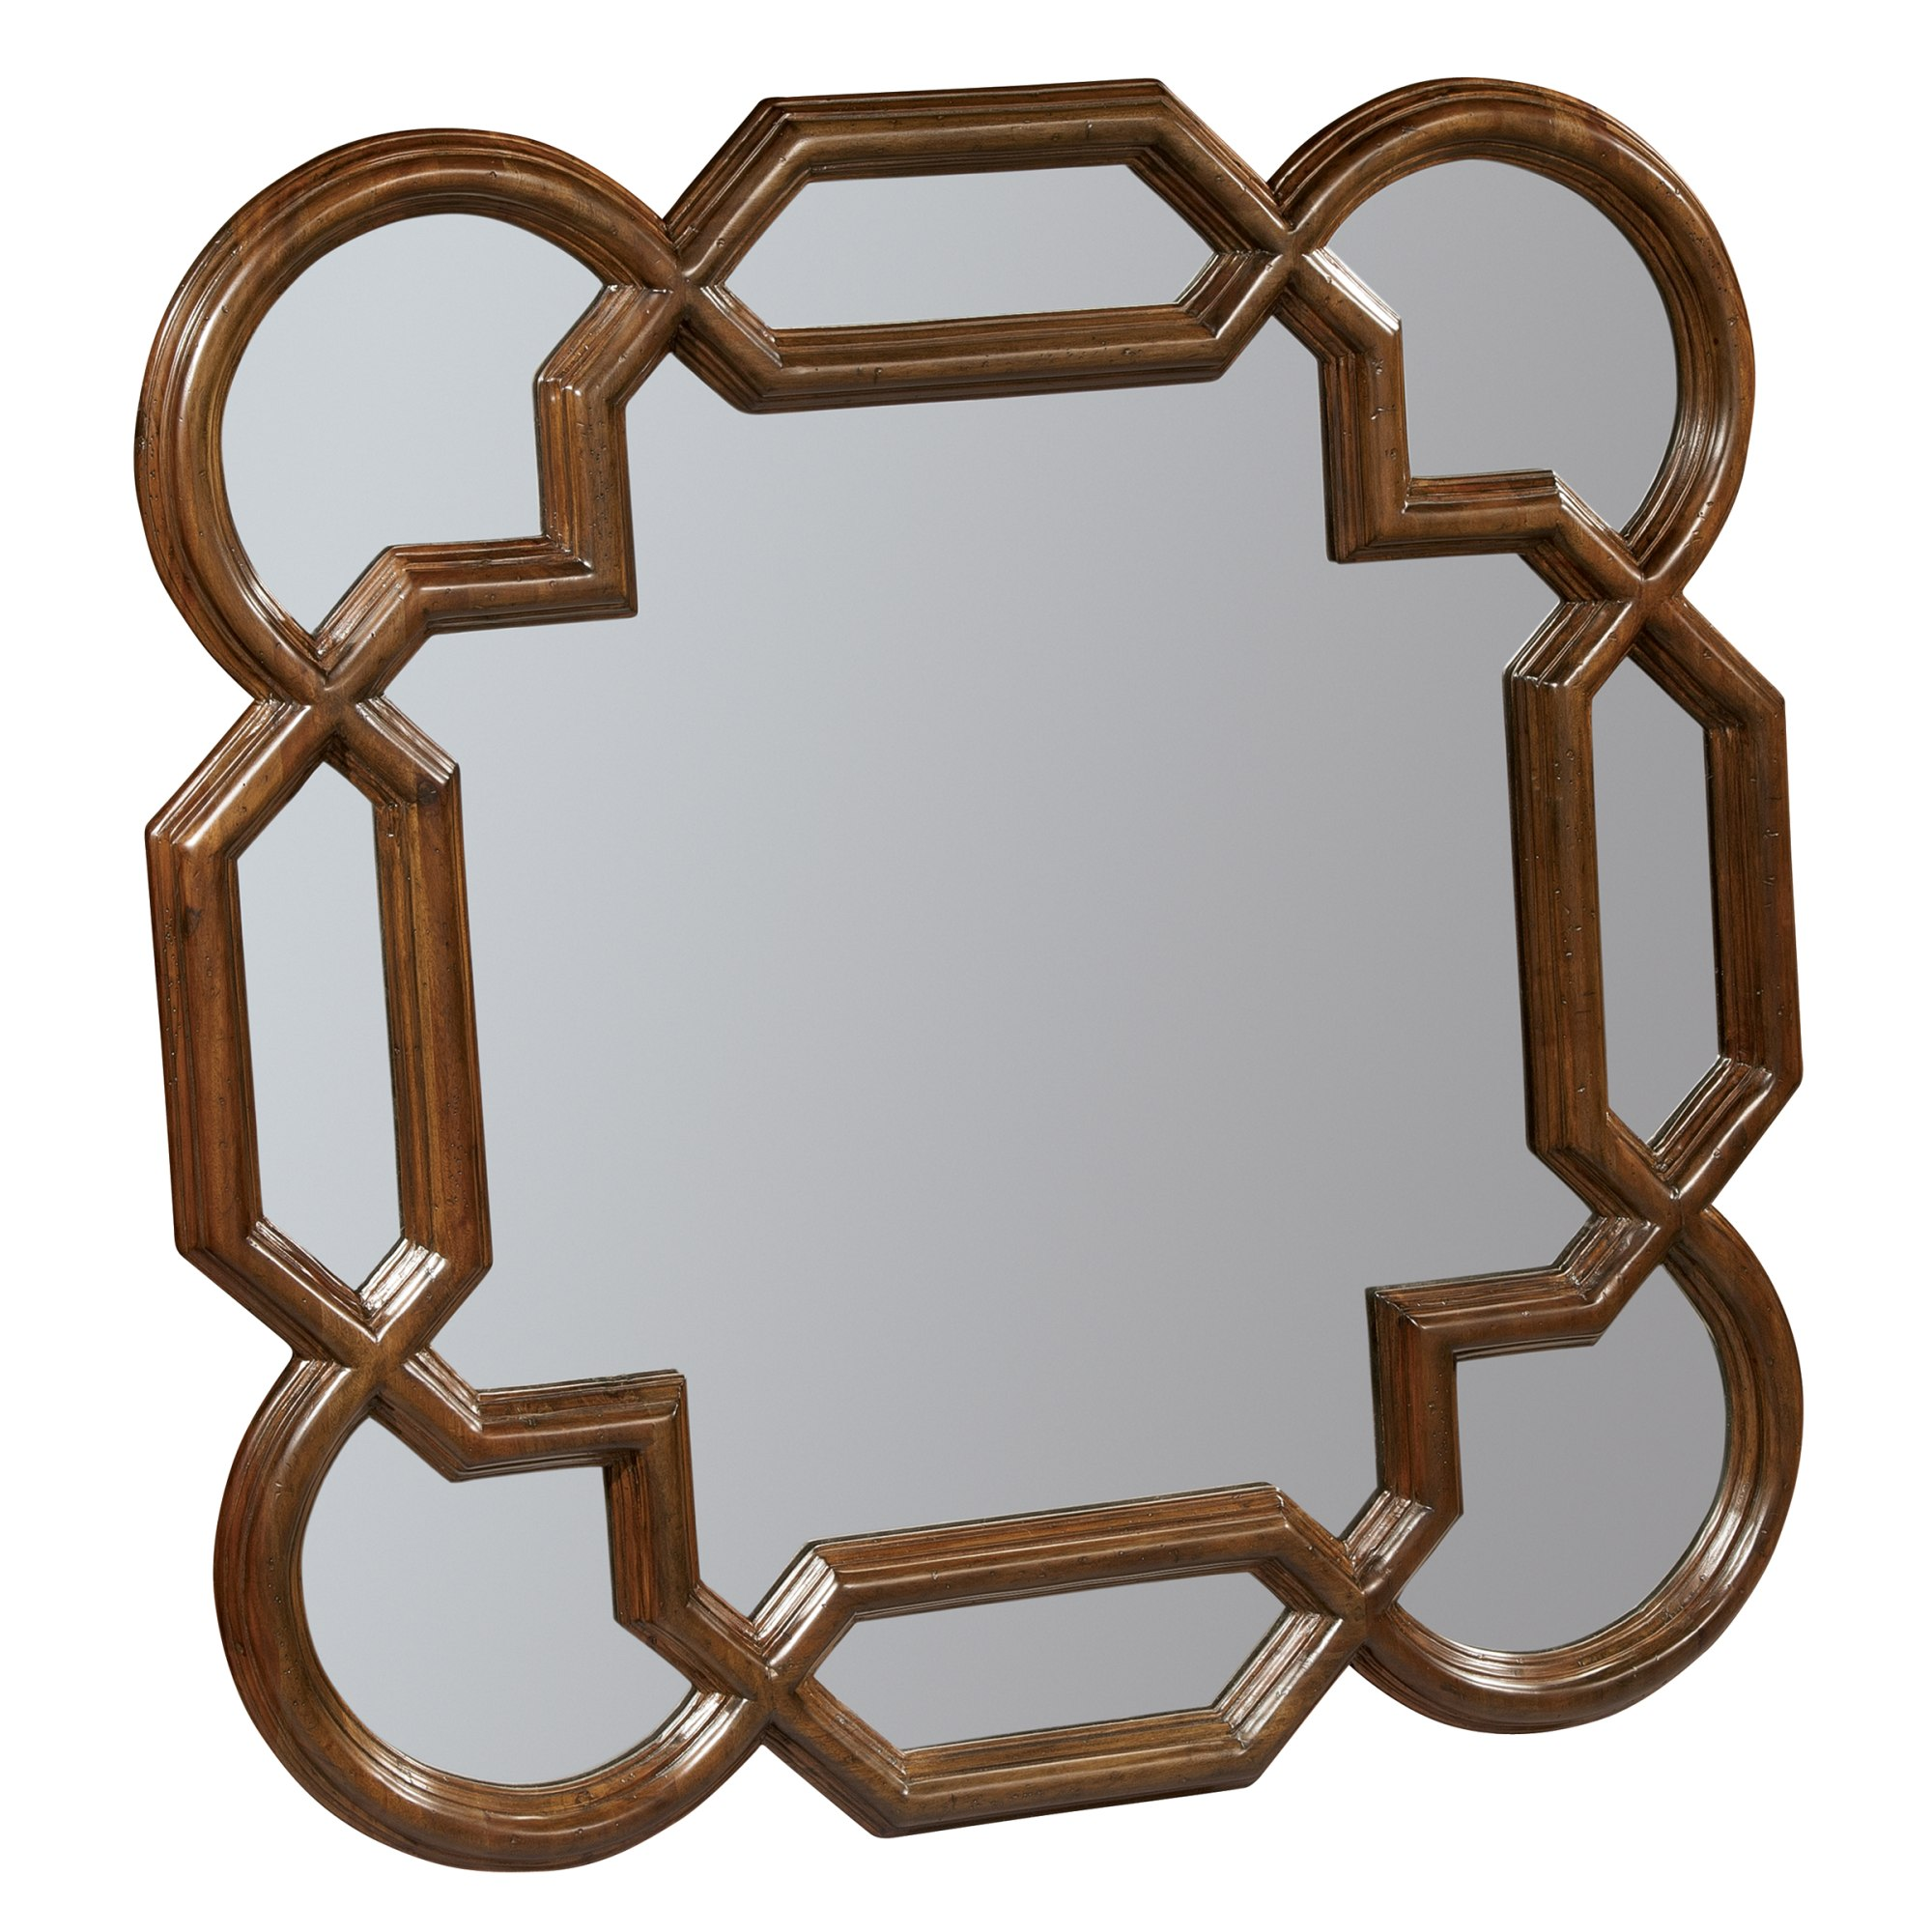 Image for 2-3273 Vintage European Square Lattice Mirror from Hekman Official Website